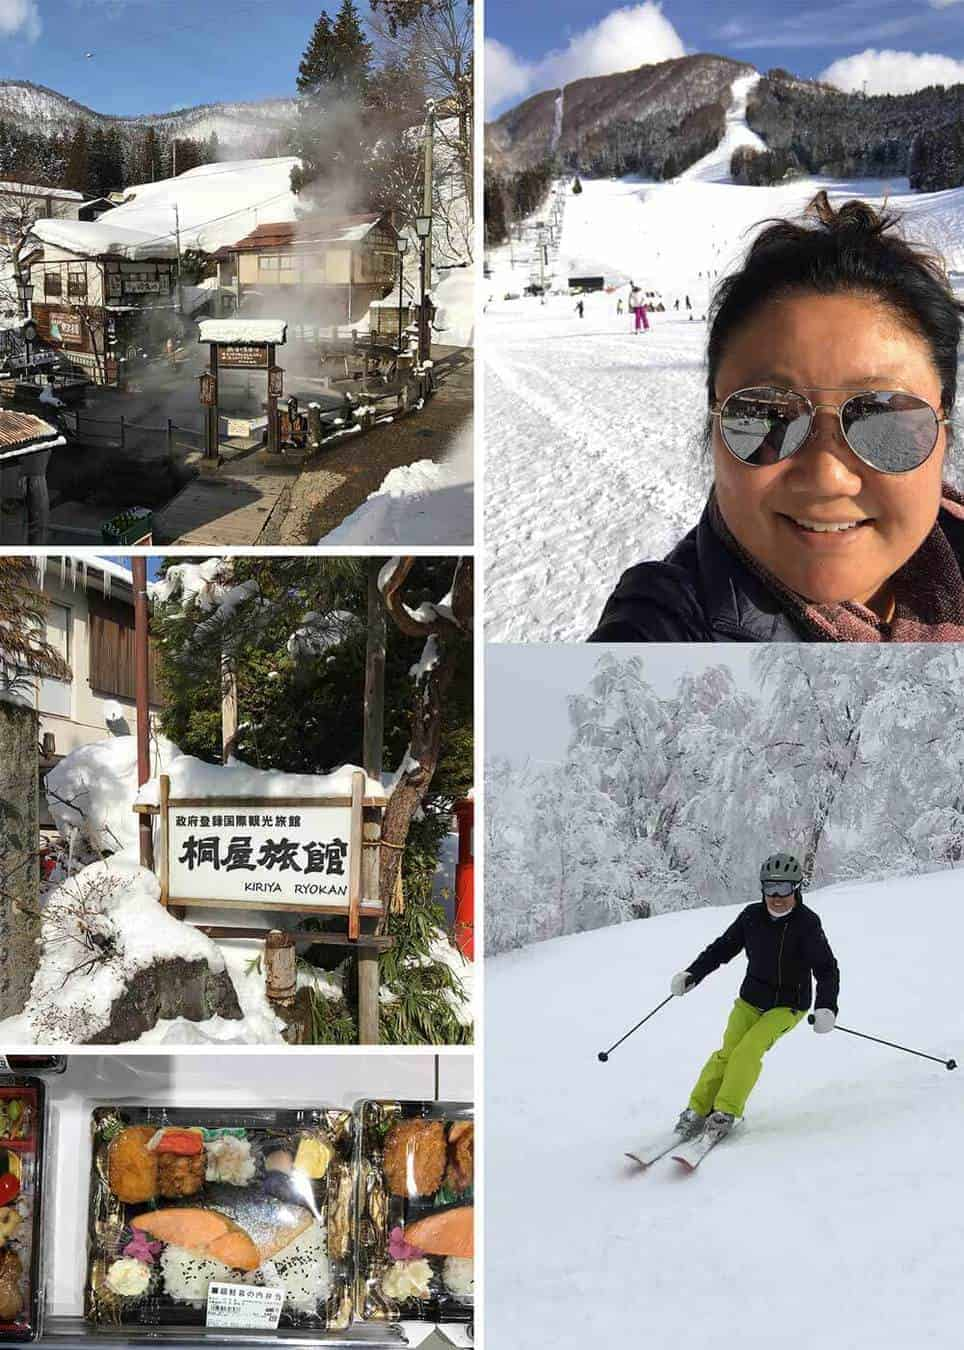 Photos from Nozawa Onsen holiday in Japan.